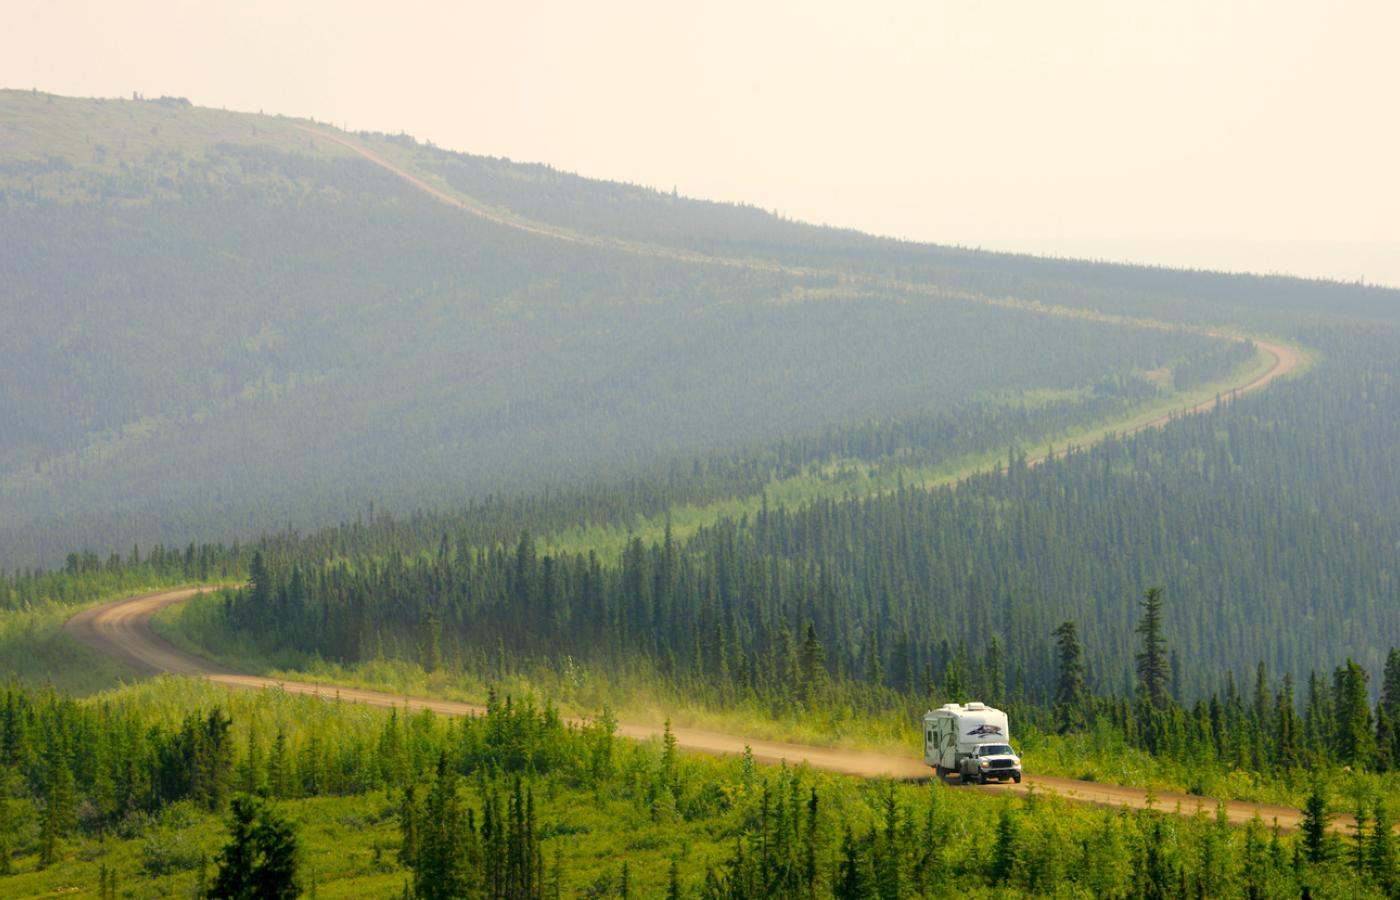 A road trip through Canada's wild Northwest Territories